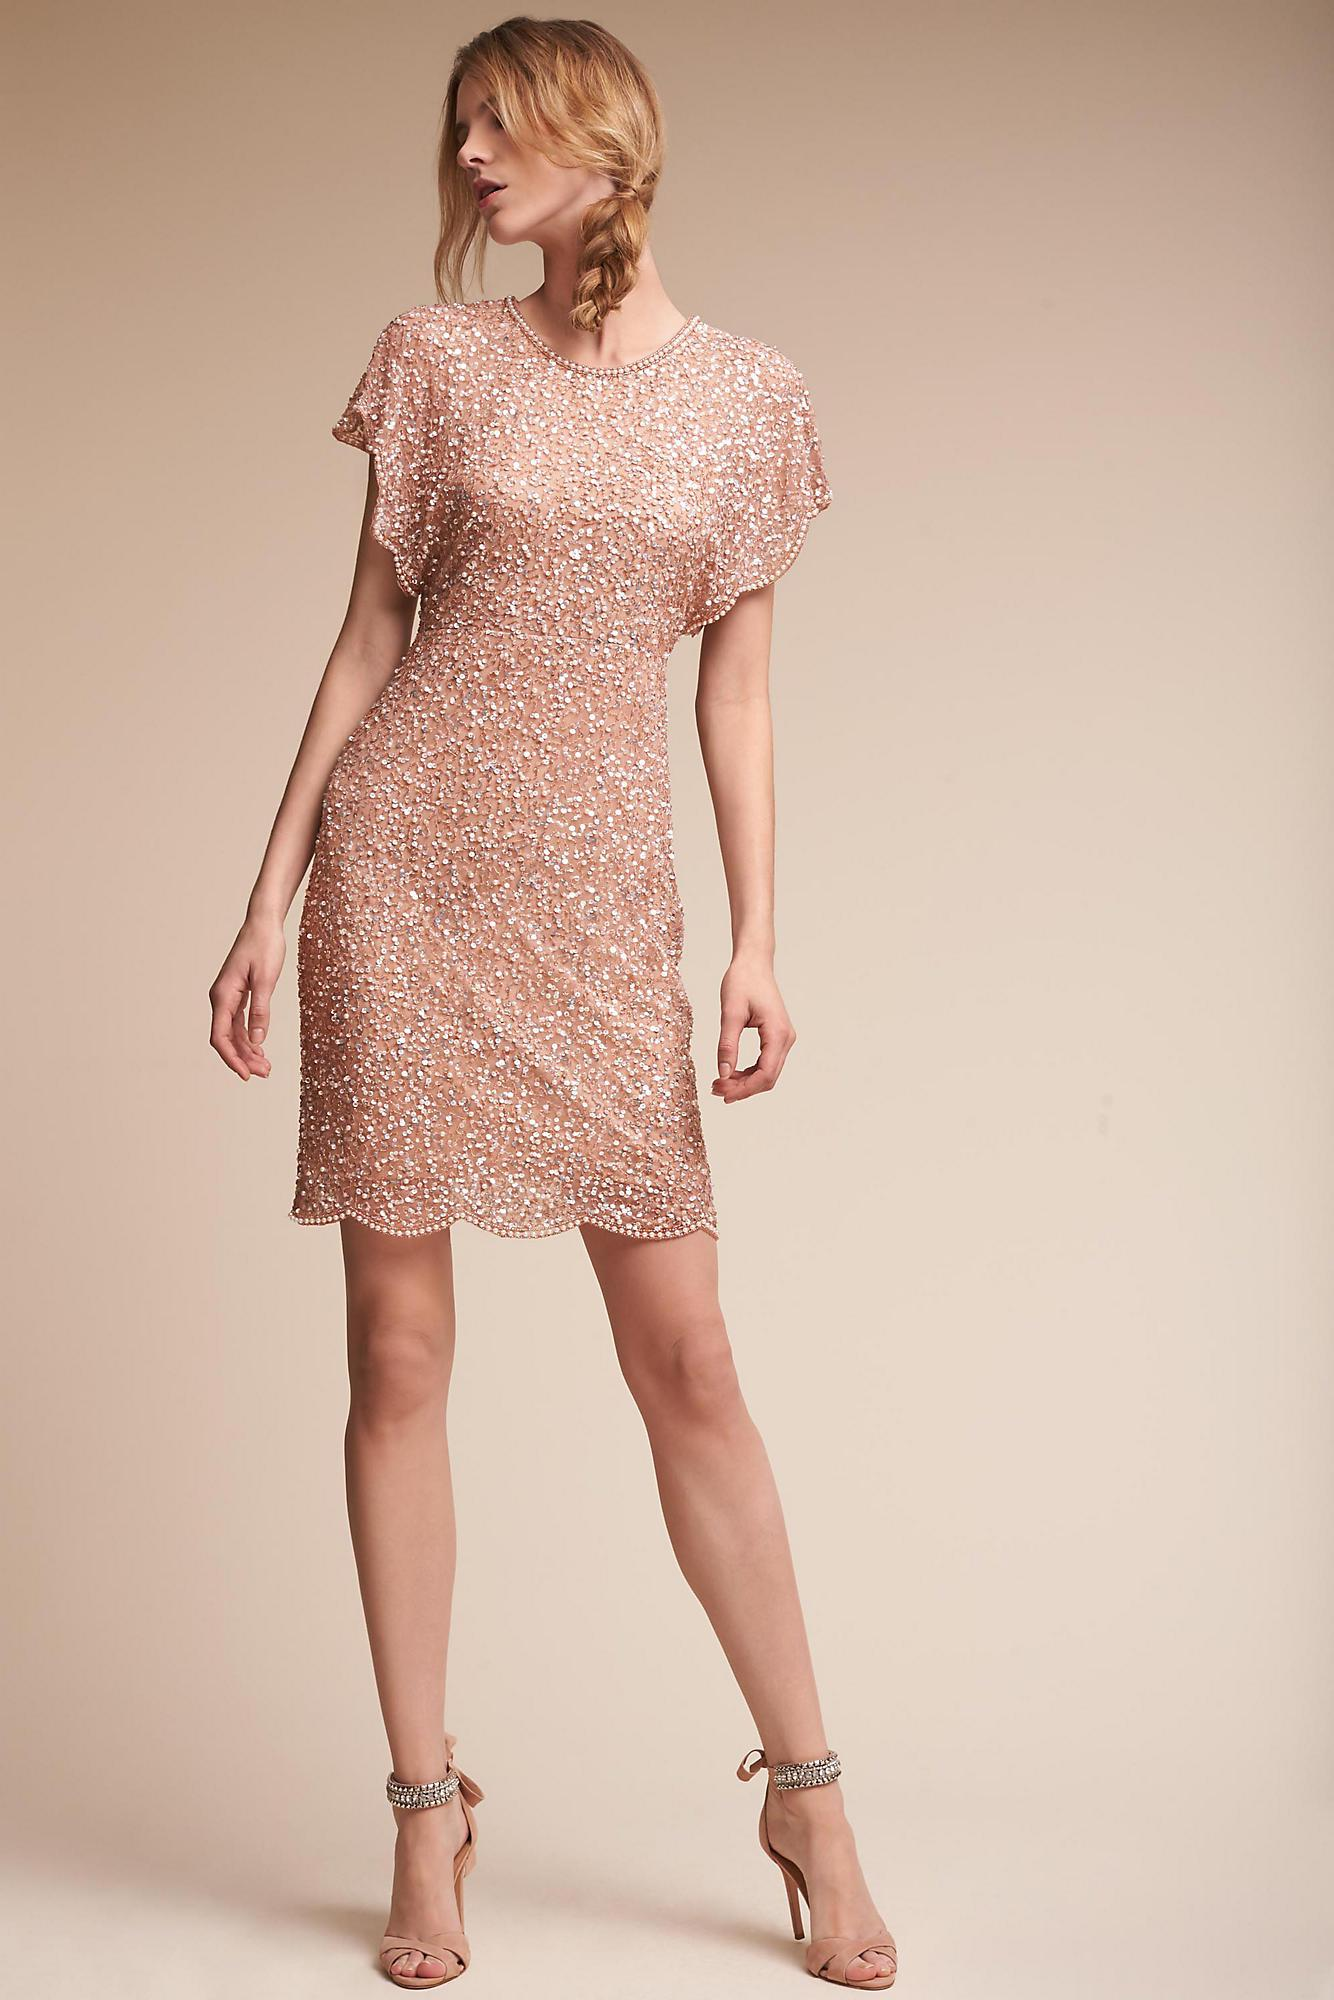 8ecb054e8e727 Lyst - Anthropologie Elin Dress in Pink